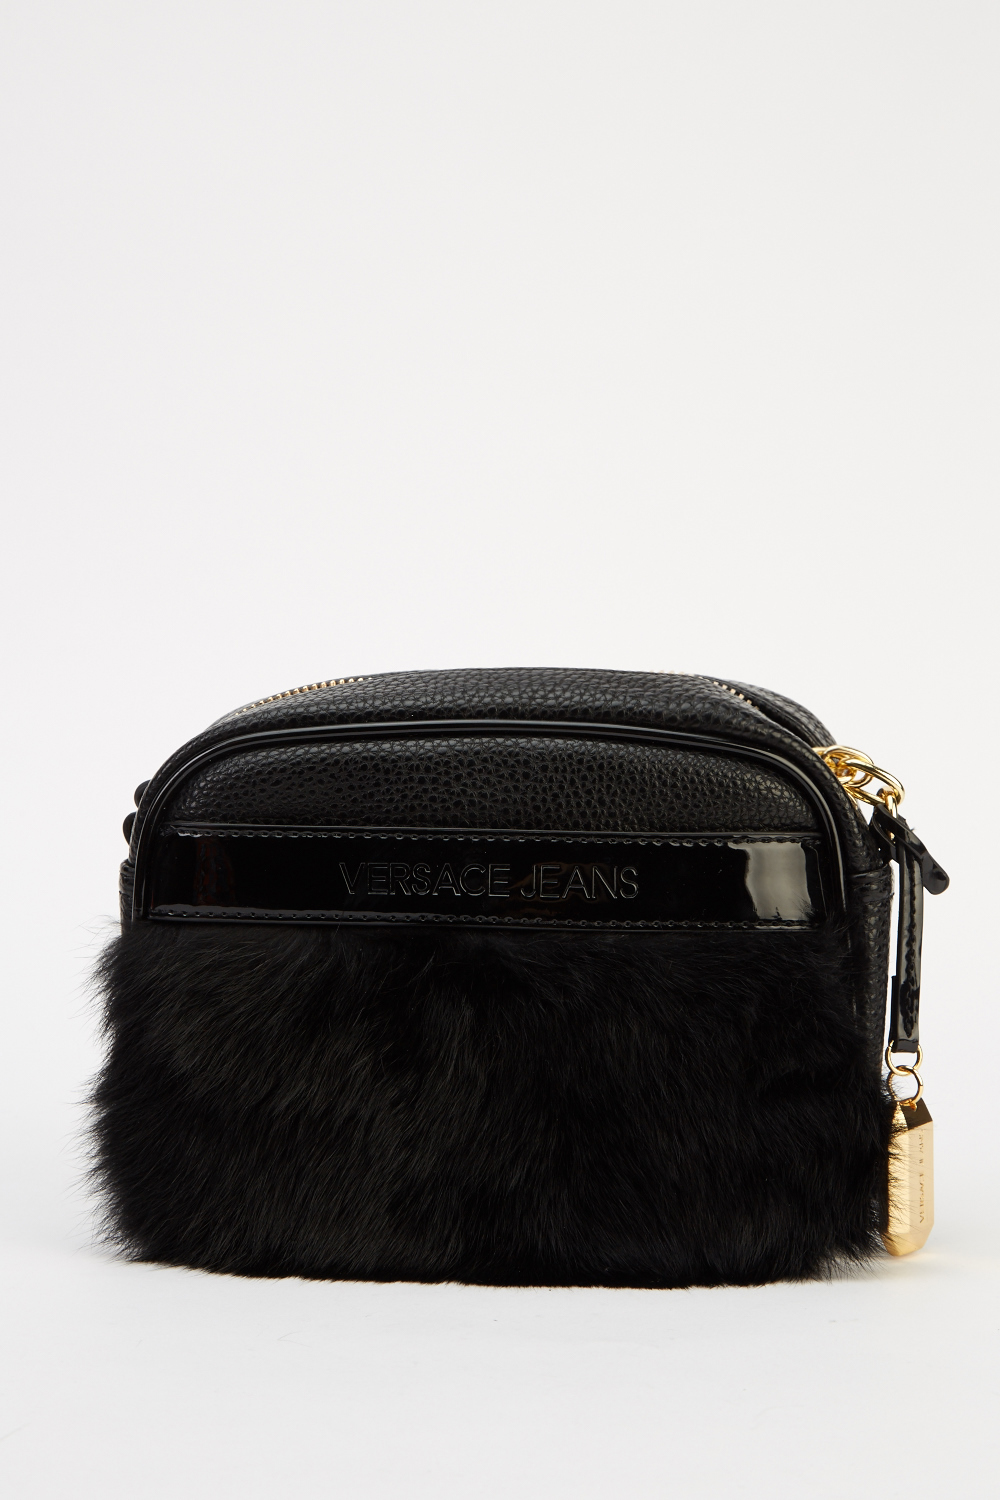 Versace Jeans Crossbody Small Bag Limited Edition Discount Designer Stock